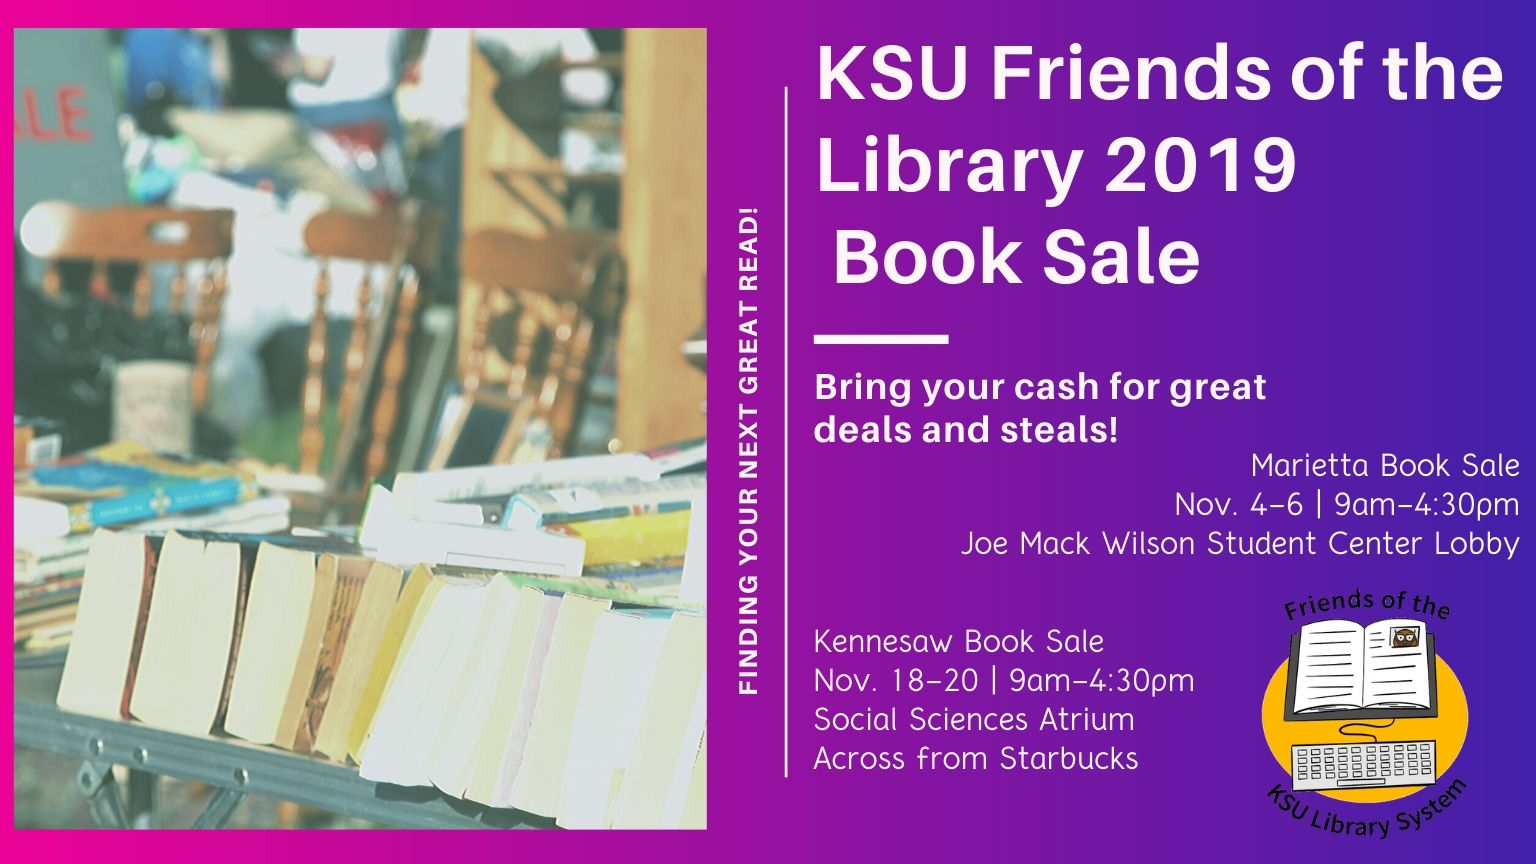 KSU Library Friends of the Library Book Sale Kennesaw